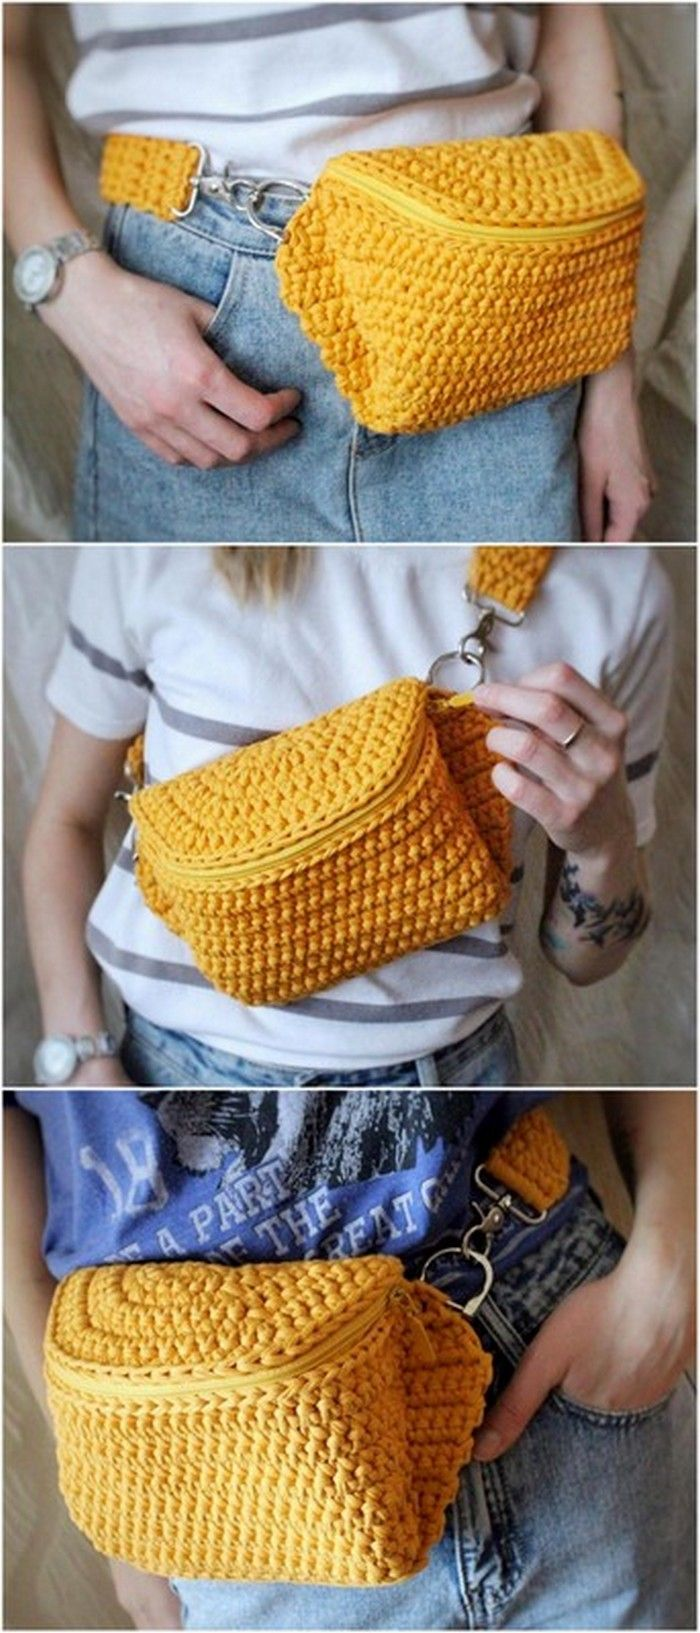 Creative And Attractive Crochet Ideas And Projects